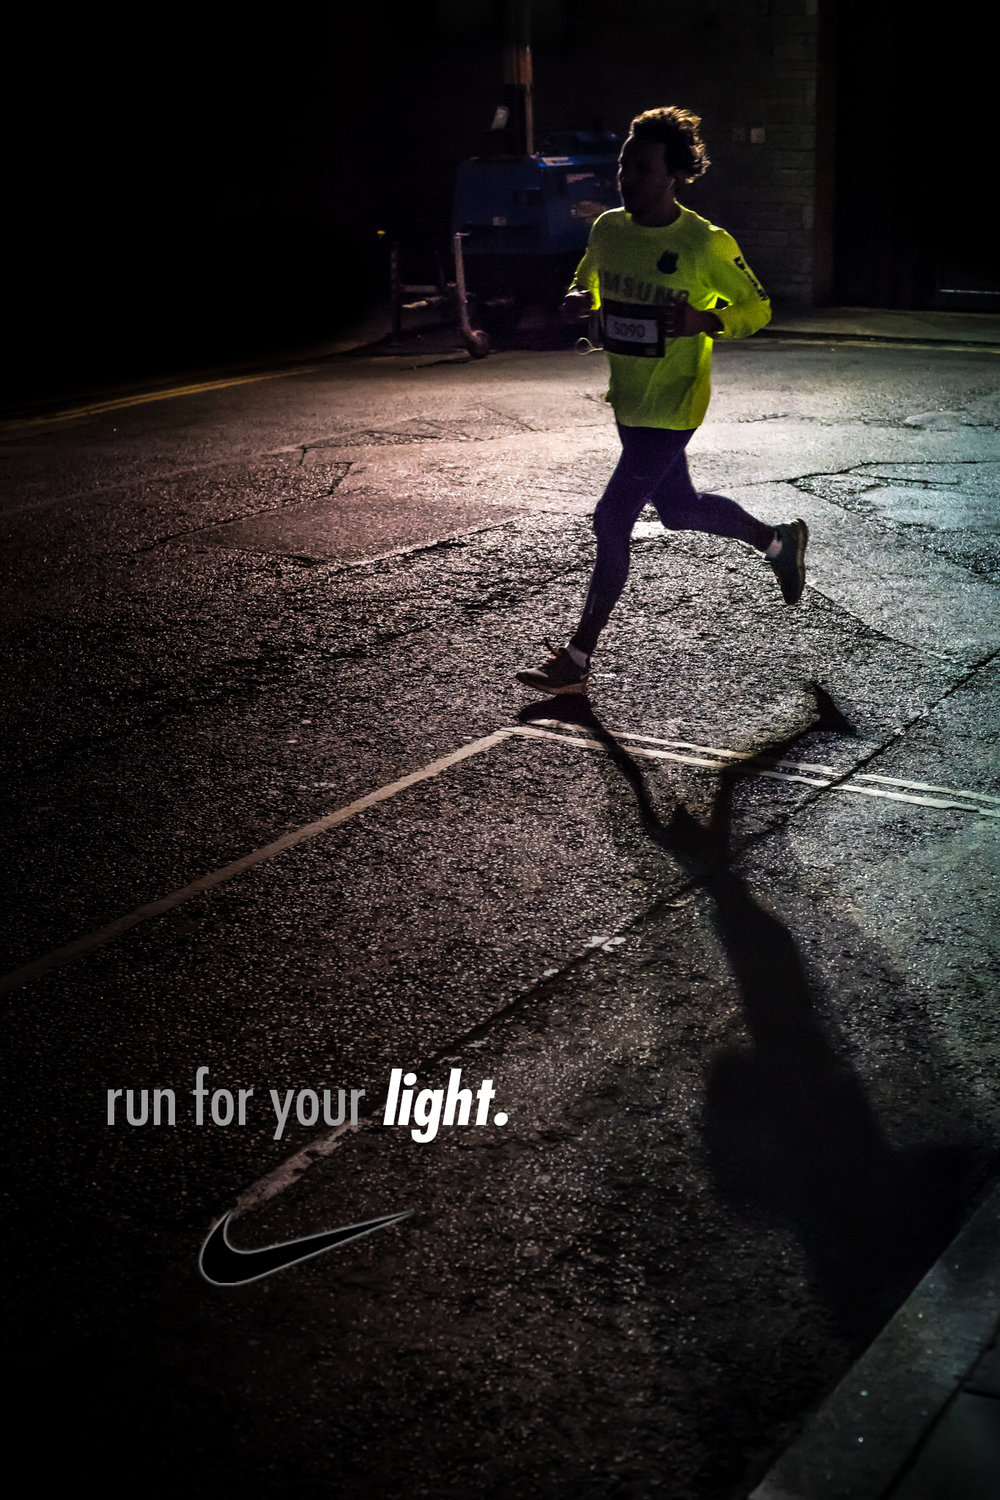 mel blanchard gong ad  nike campaign_night street runner guy yellow.jpg